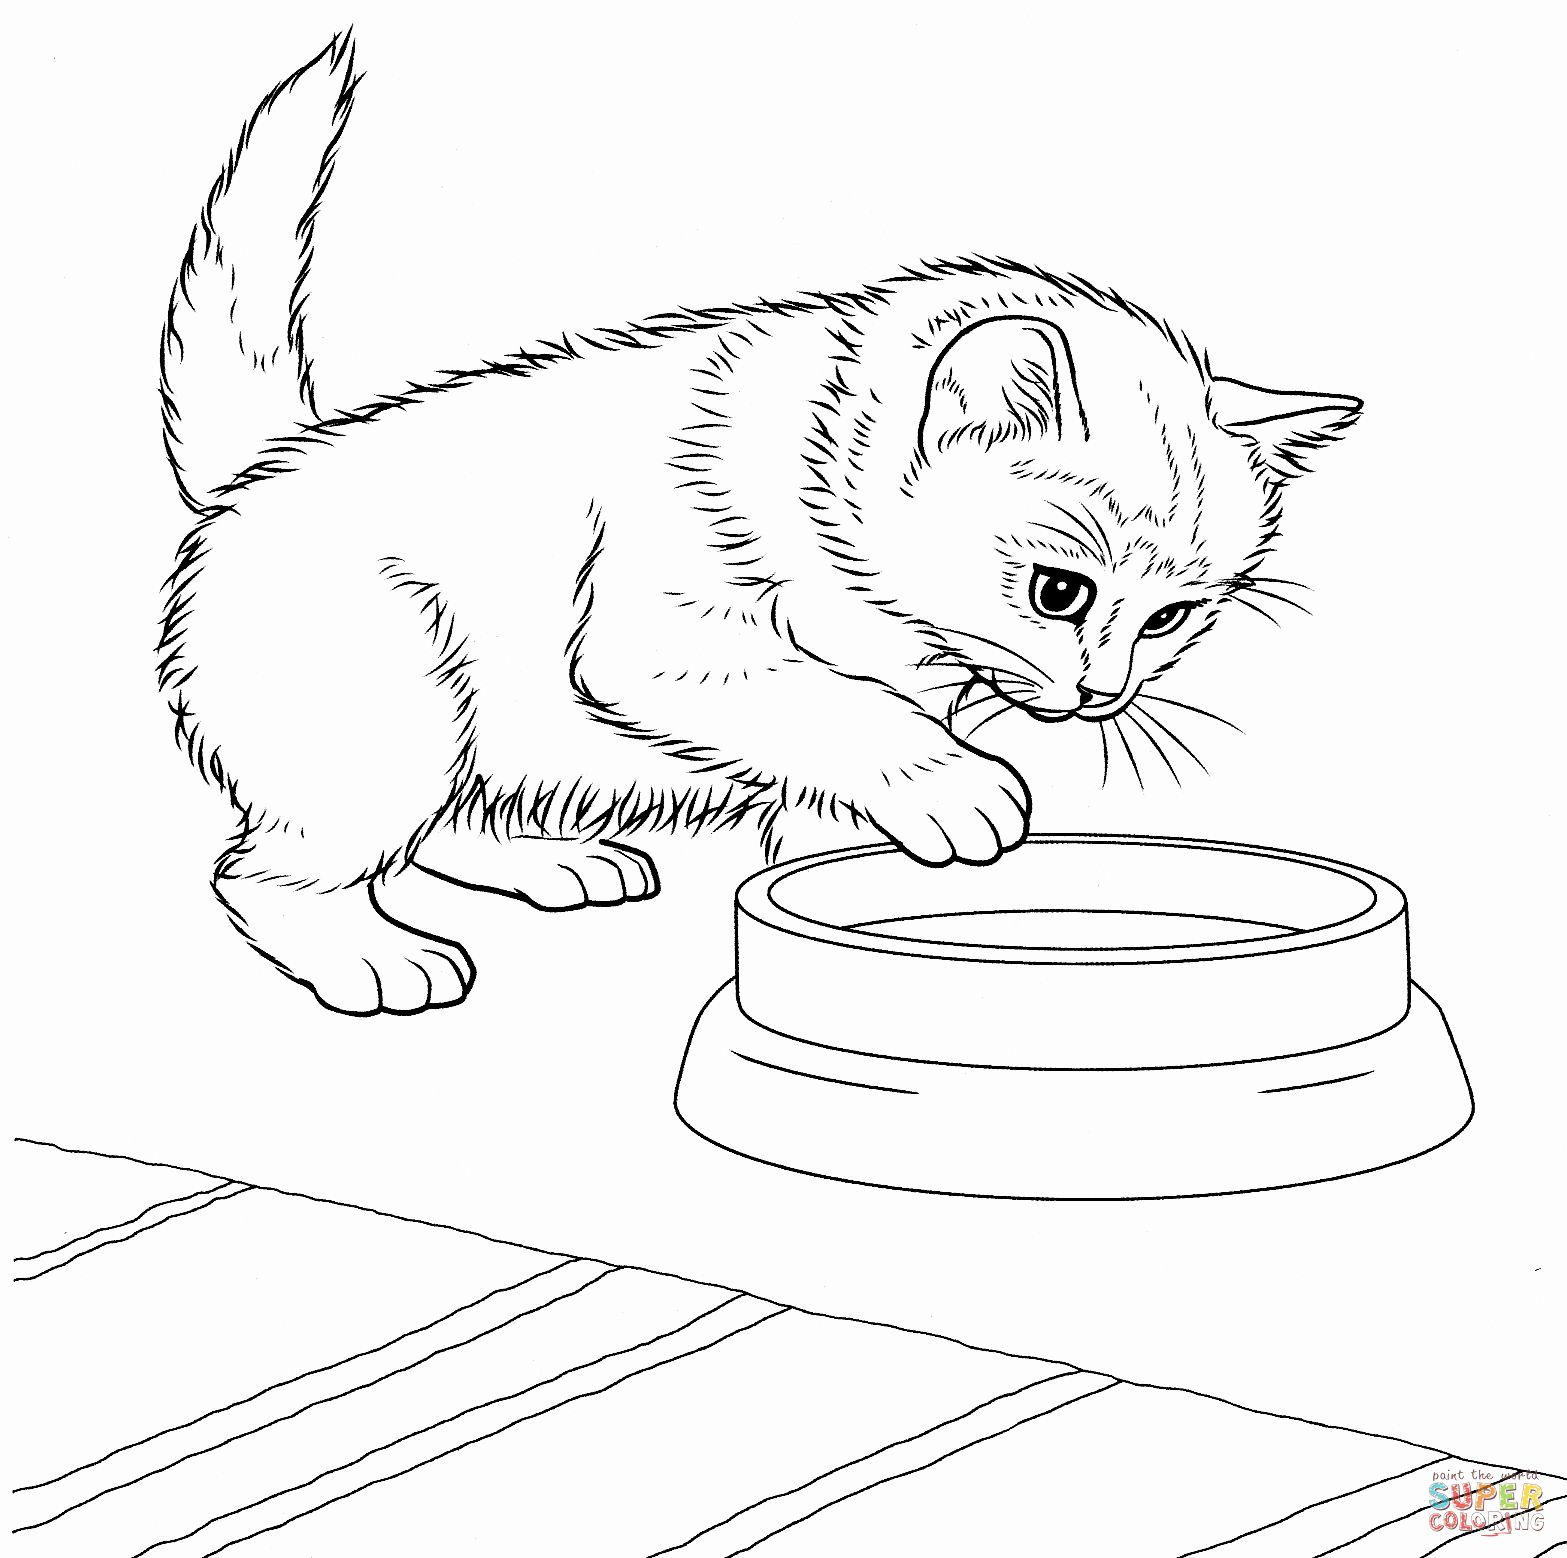 Kitty Cat Coloring Page Lovely Javanese Kitten Coloring Page Kitten Coloring Book Puppy Coloring Pages Kittens Coloring